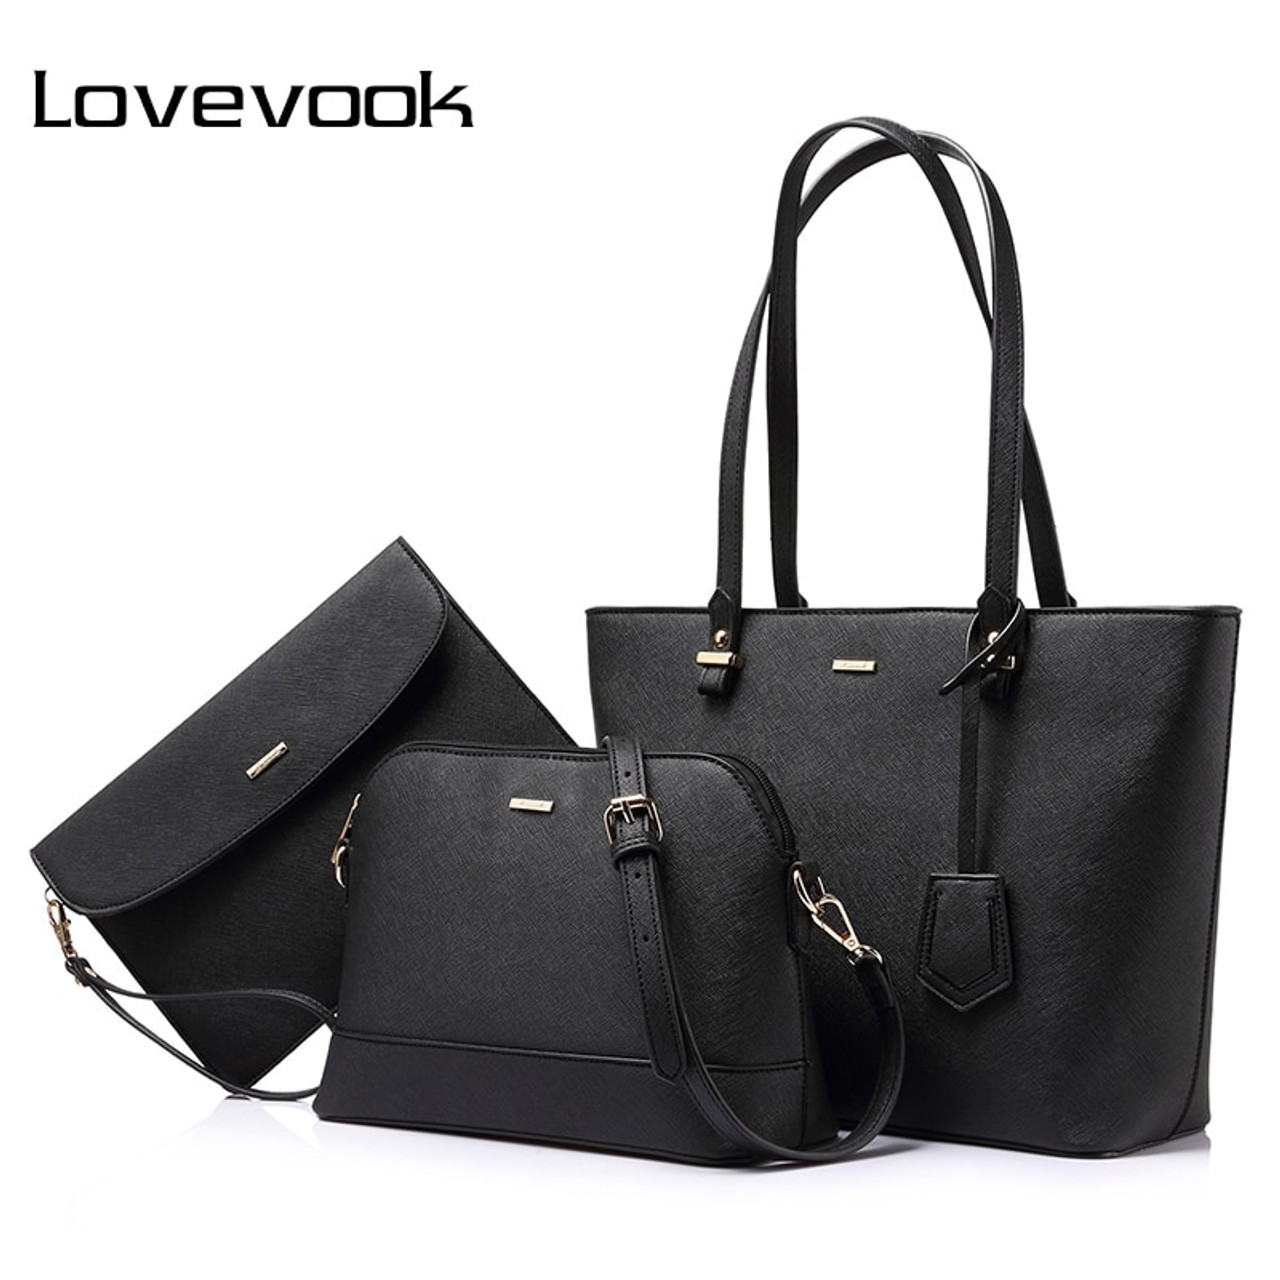 4c9fef485b0f8a LOVEVOOK handbag women shoulder bags designer crossbody bag female large  tote 3 set bag big luxury ...